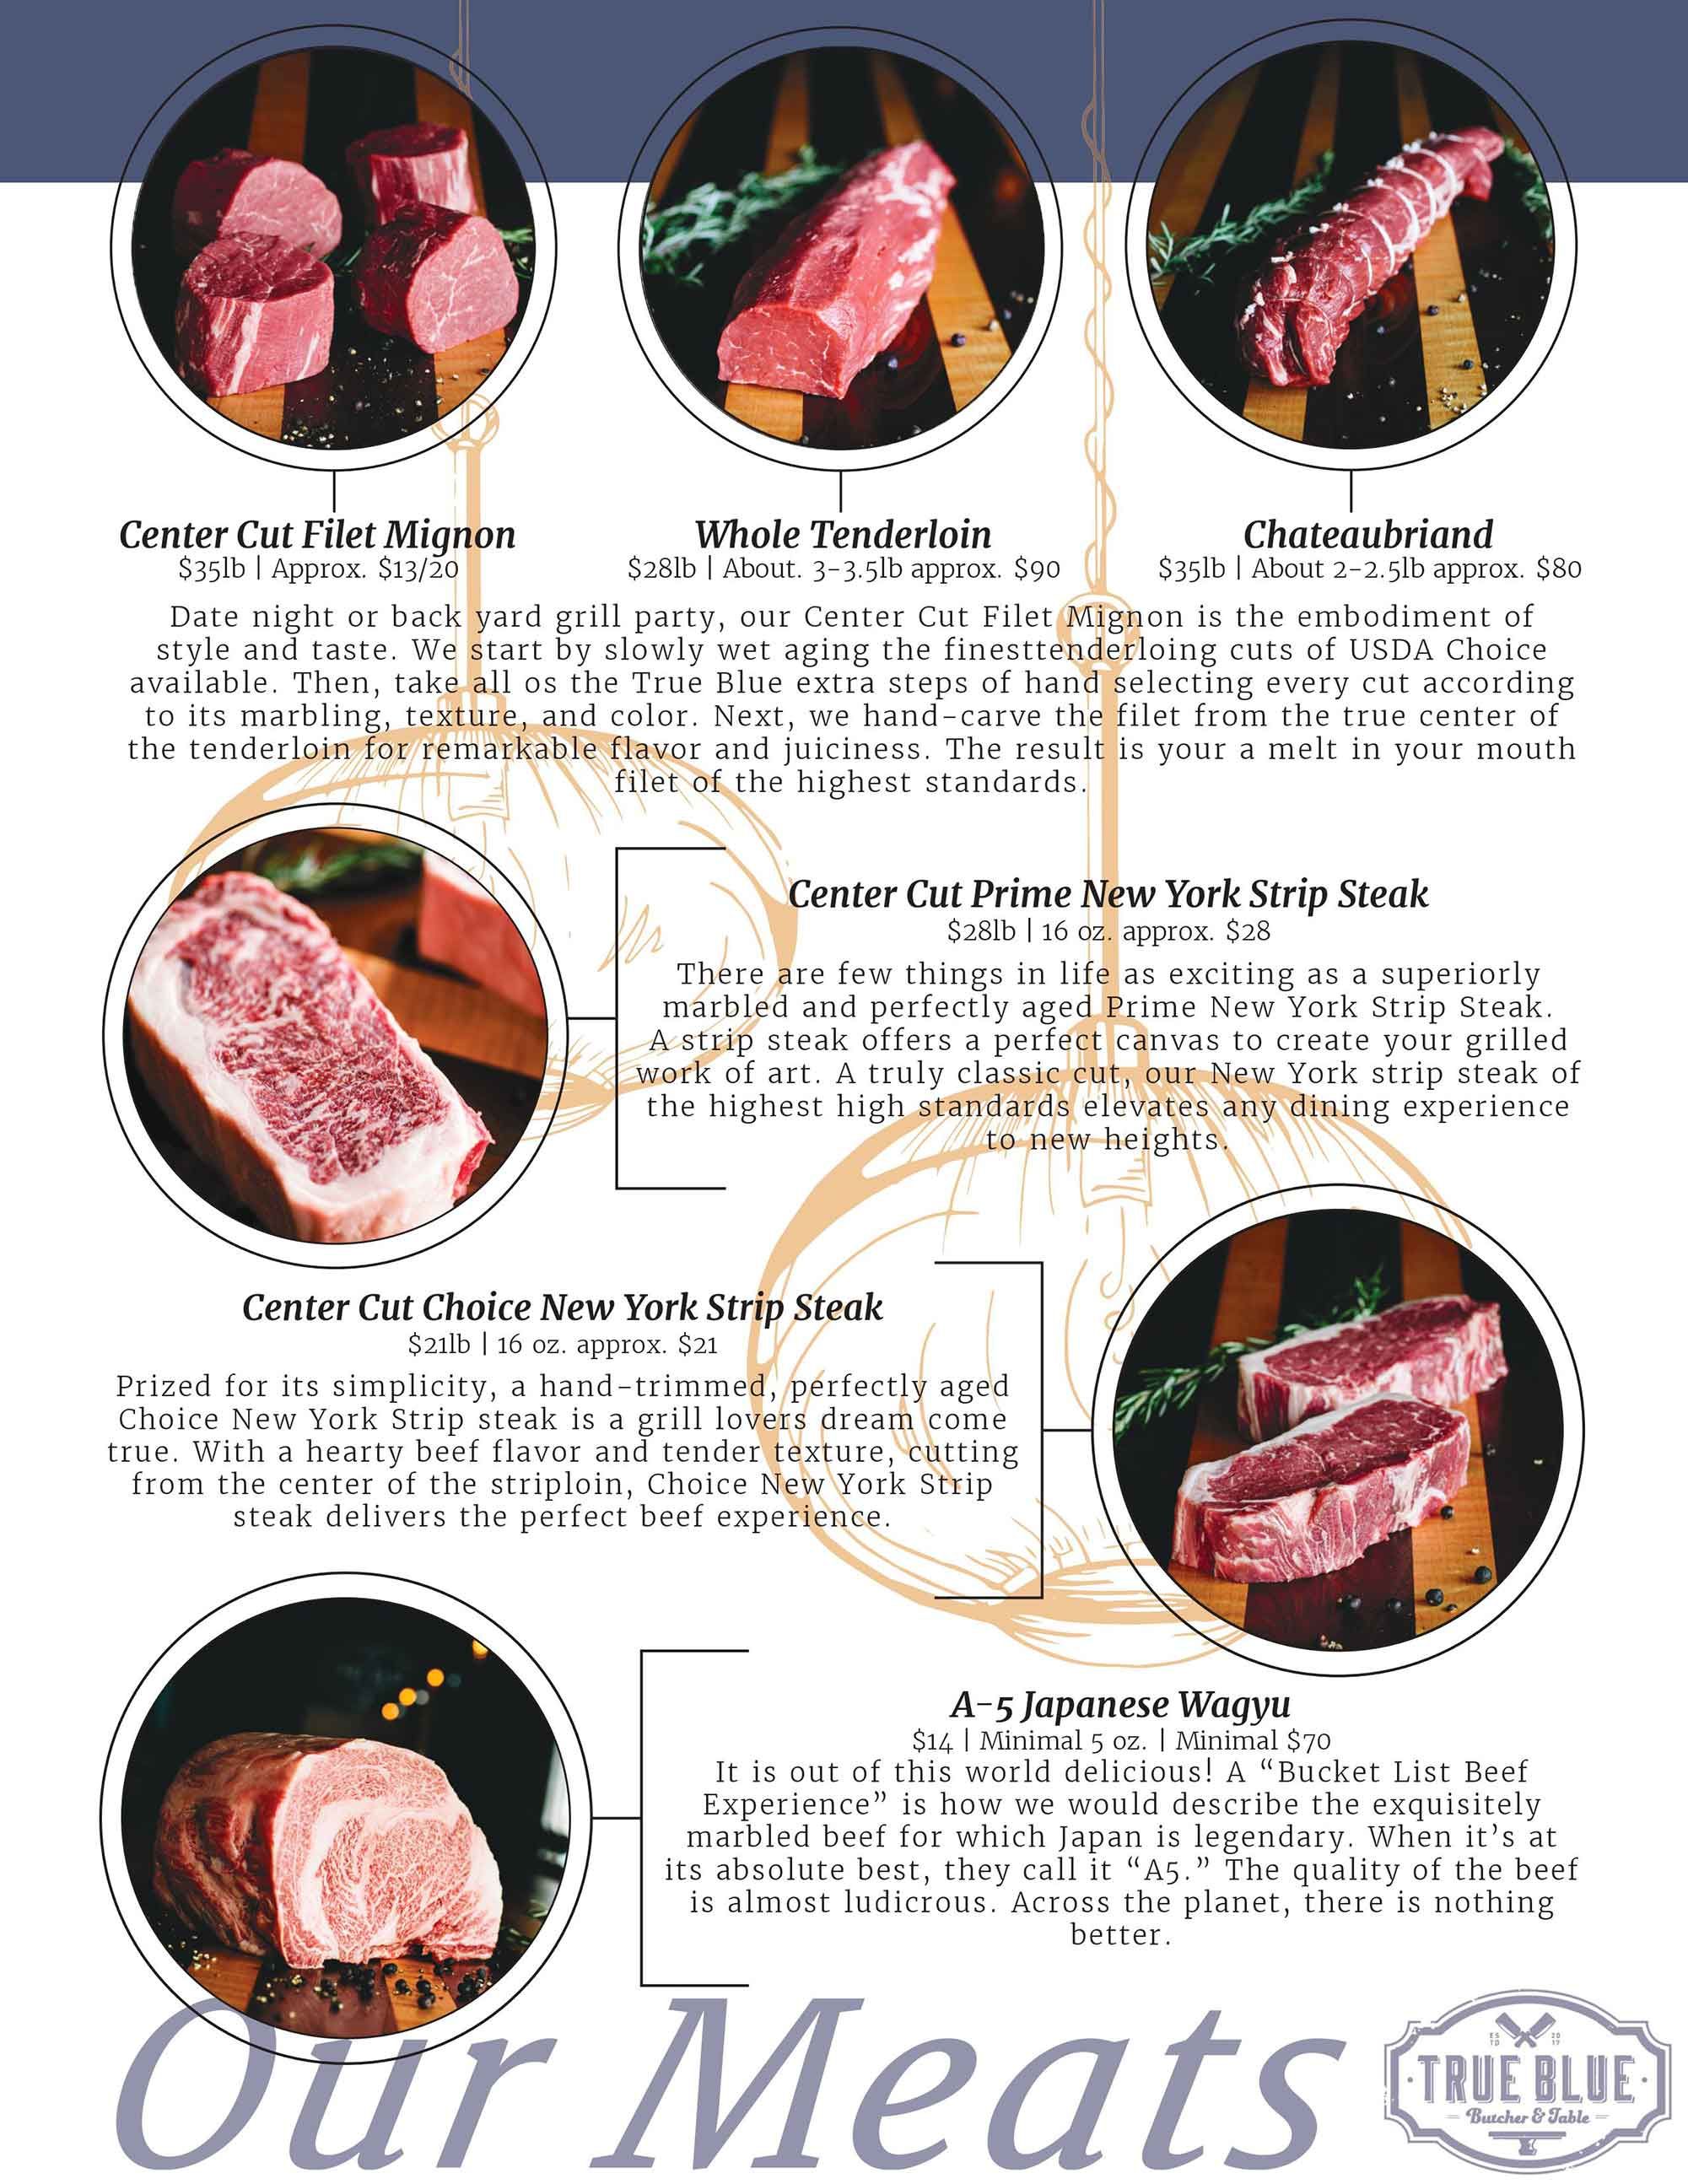 Center Cut Filet Mignon, Whole Tenderloin, Chateaubriand, Center Cut Prime New York Strip Steak, Center Cut Choice New York Strip Steak, A-5 Japanese Wagyu